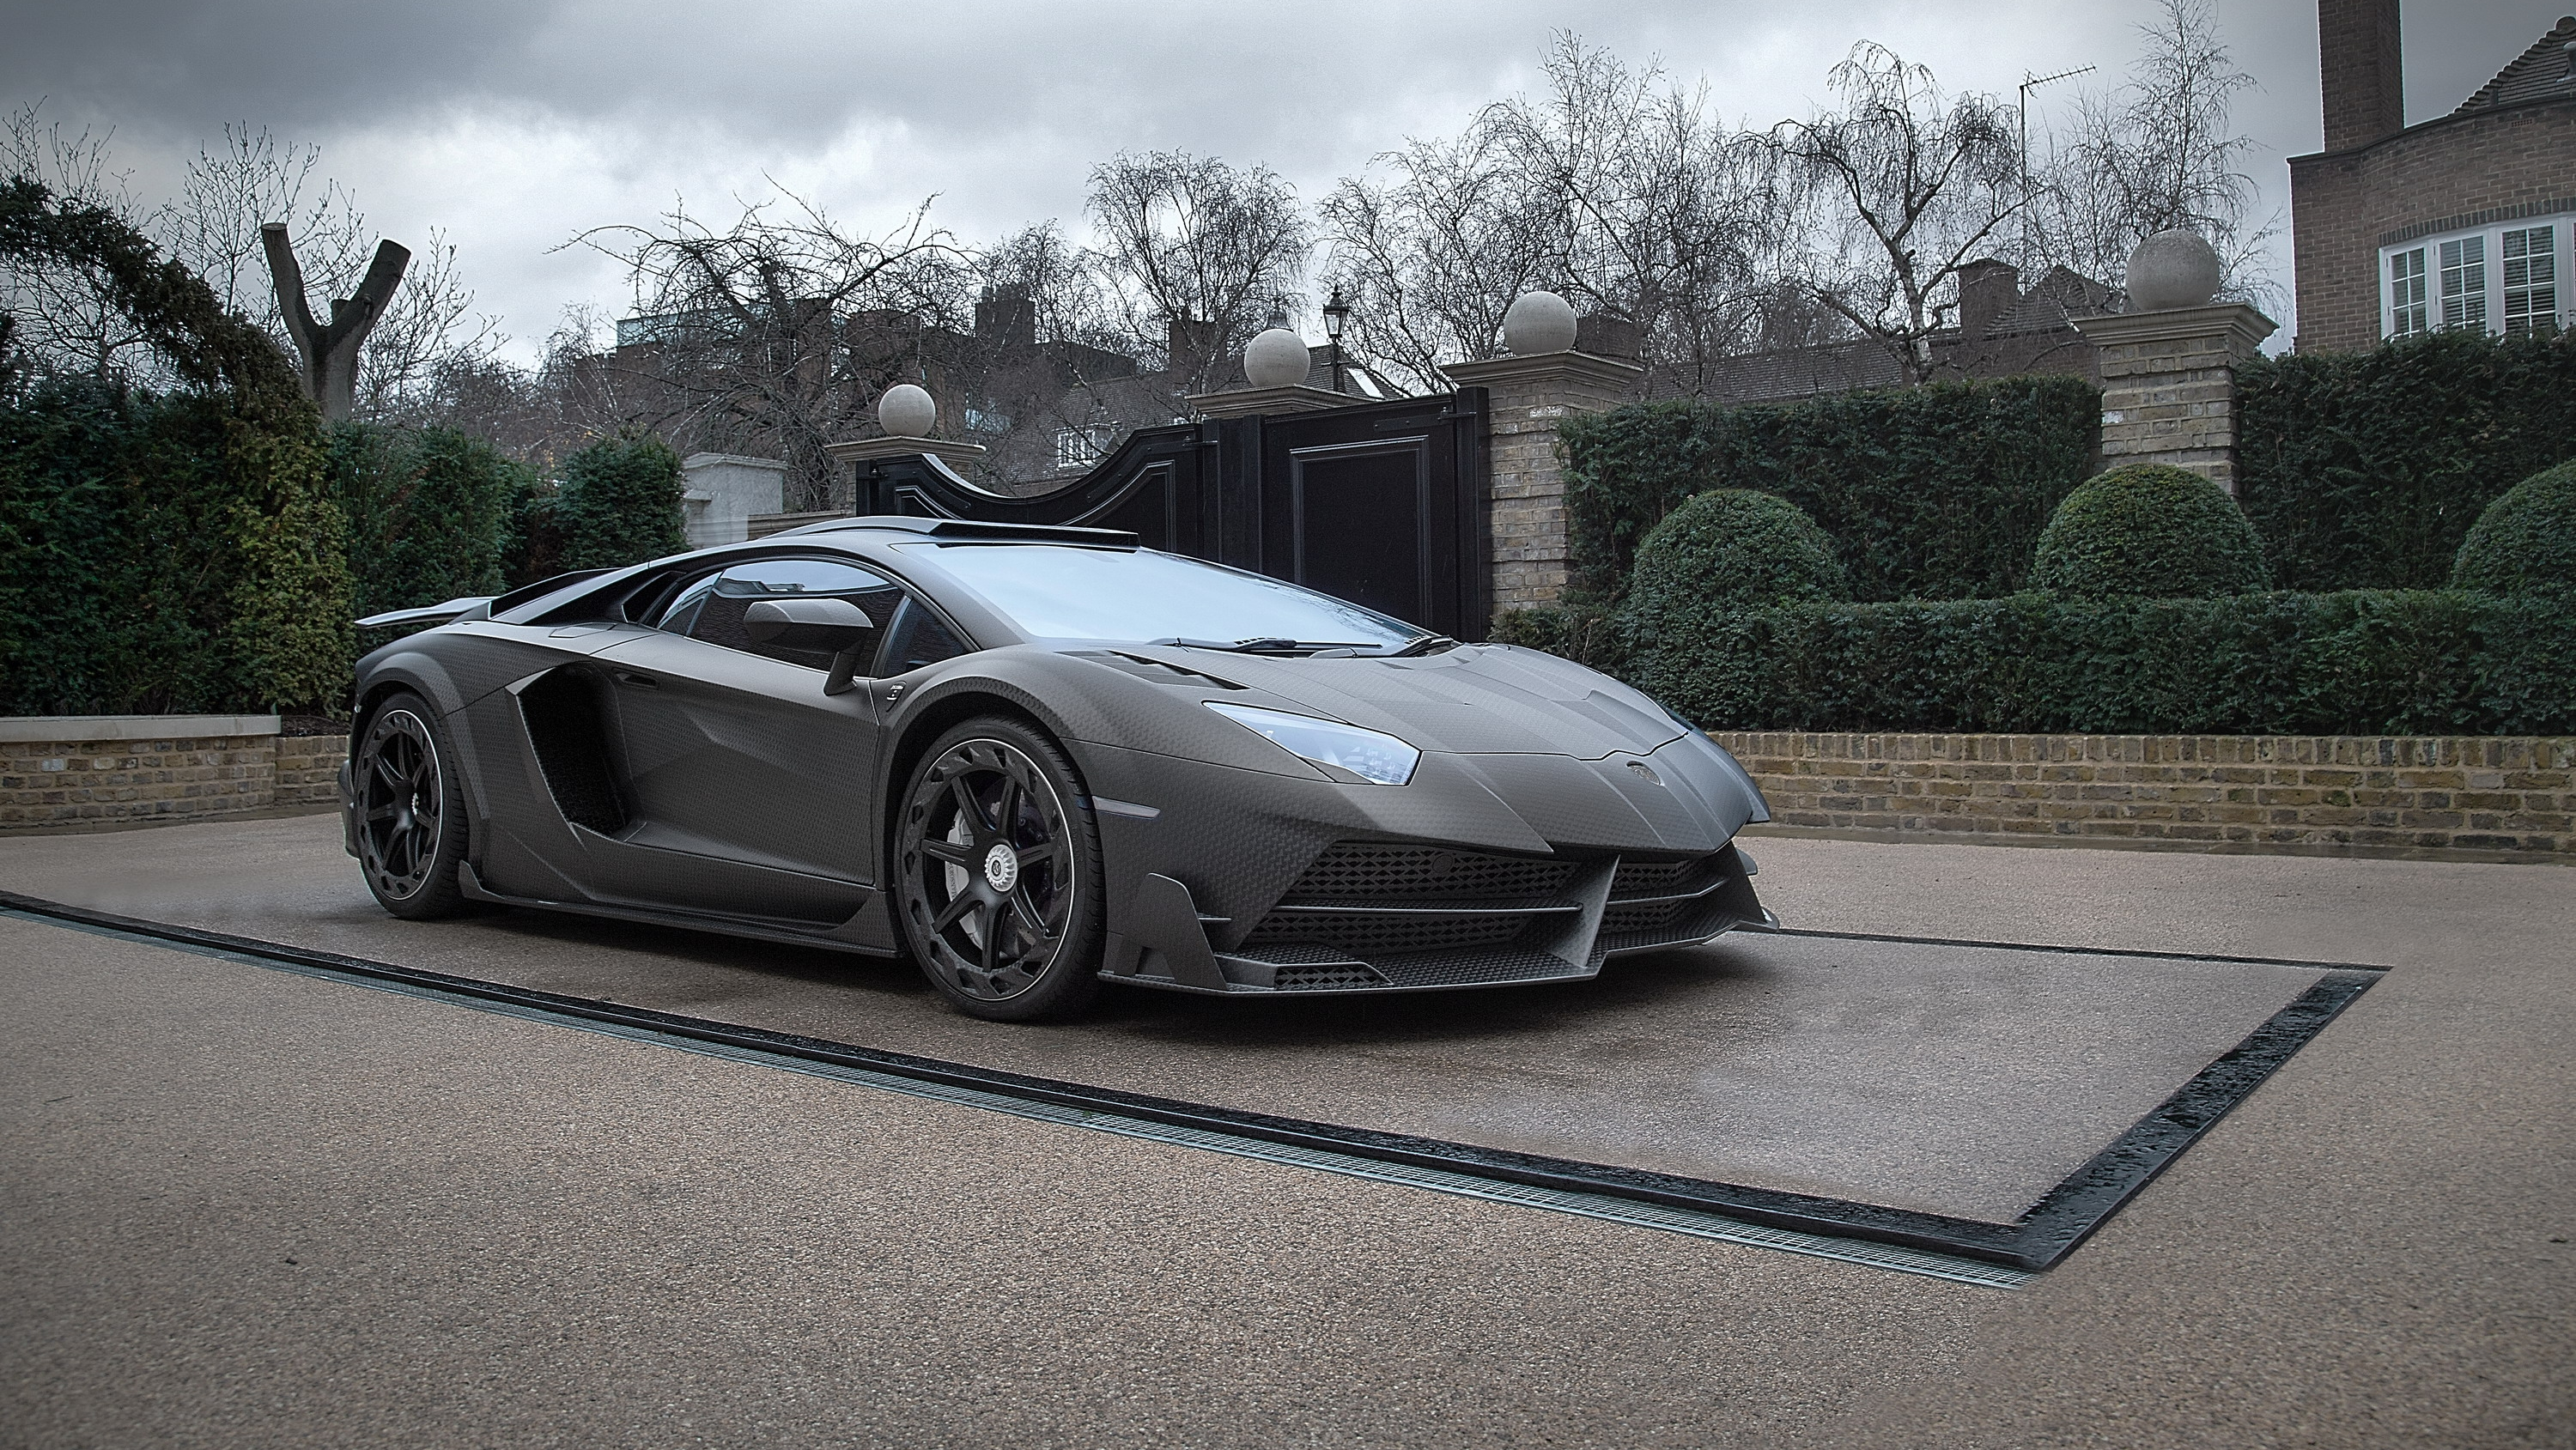 today of international supercar sexy dealers with very selection bay pin used romans finest for sale cars in aventador performance s prep us uk are pinterest speak lamborghini leading the to